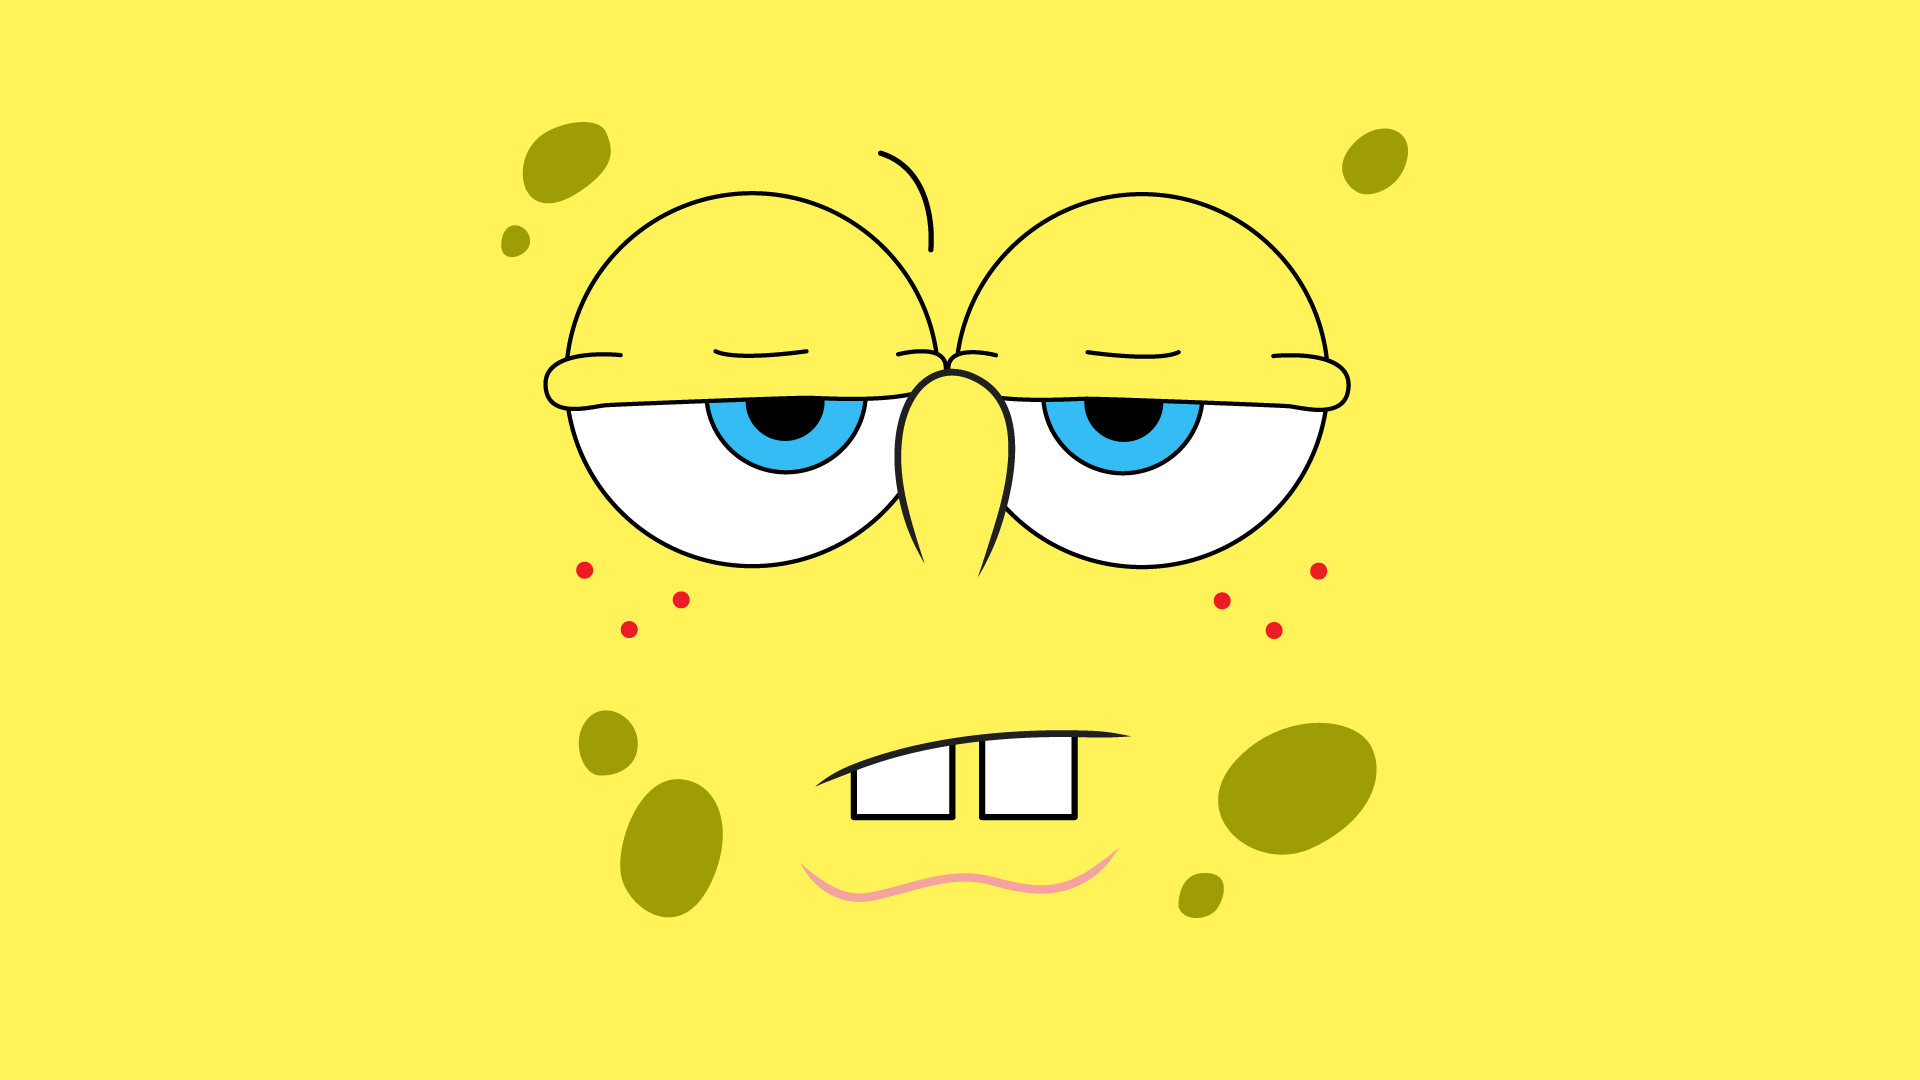 Spongebob desktop wallpapers wallpaper cave for Spongebob powerpoint template